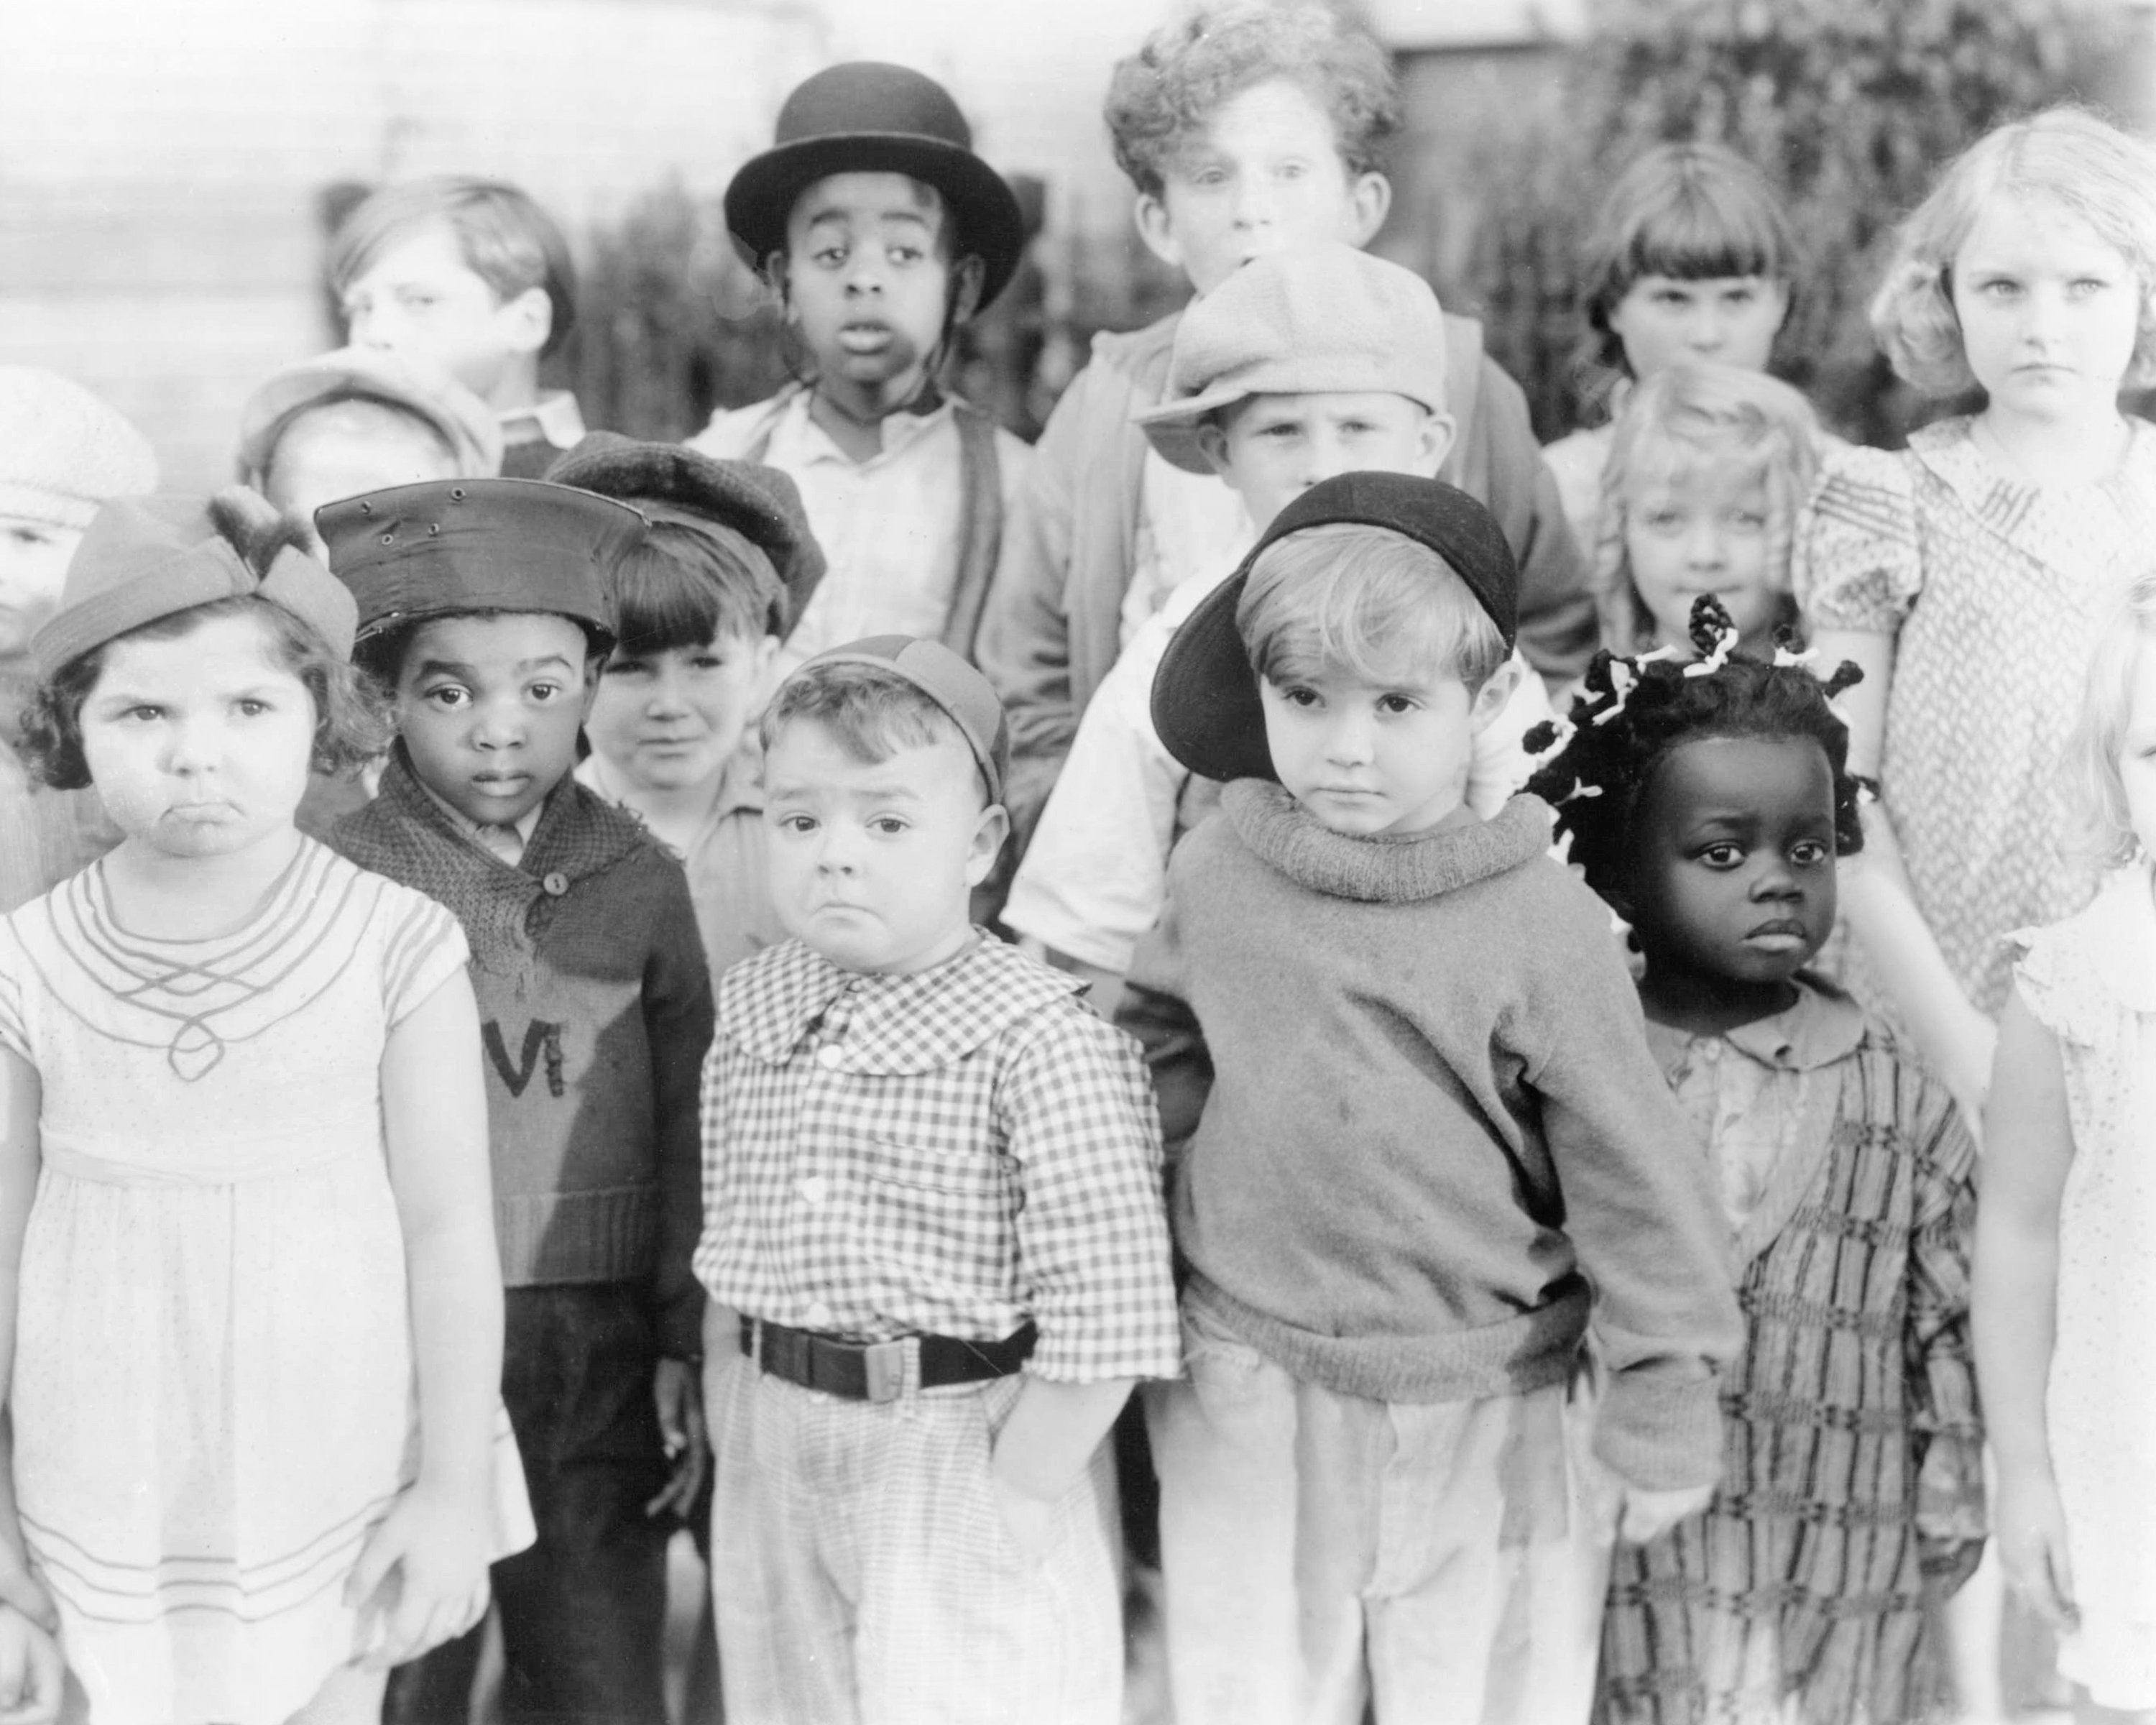 At far left is Eileen Bernstein and, from third left are George McFarland (1928 - 1993), Scotty Beckett (1929 - 1968) and Billie Thomas (1931 - 1980). Matthew Beard (1925 - 1981) | Source: Getty Images